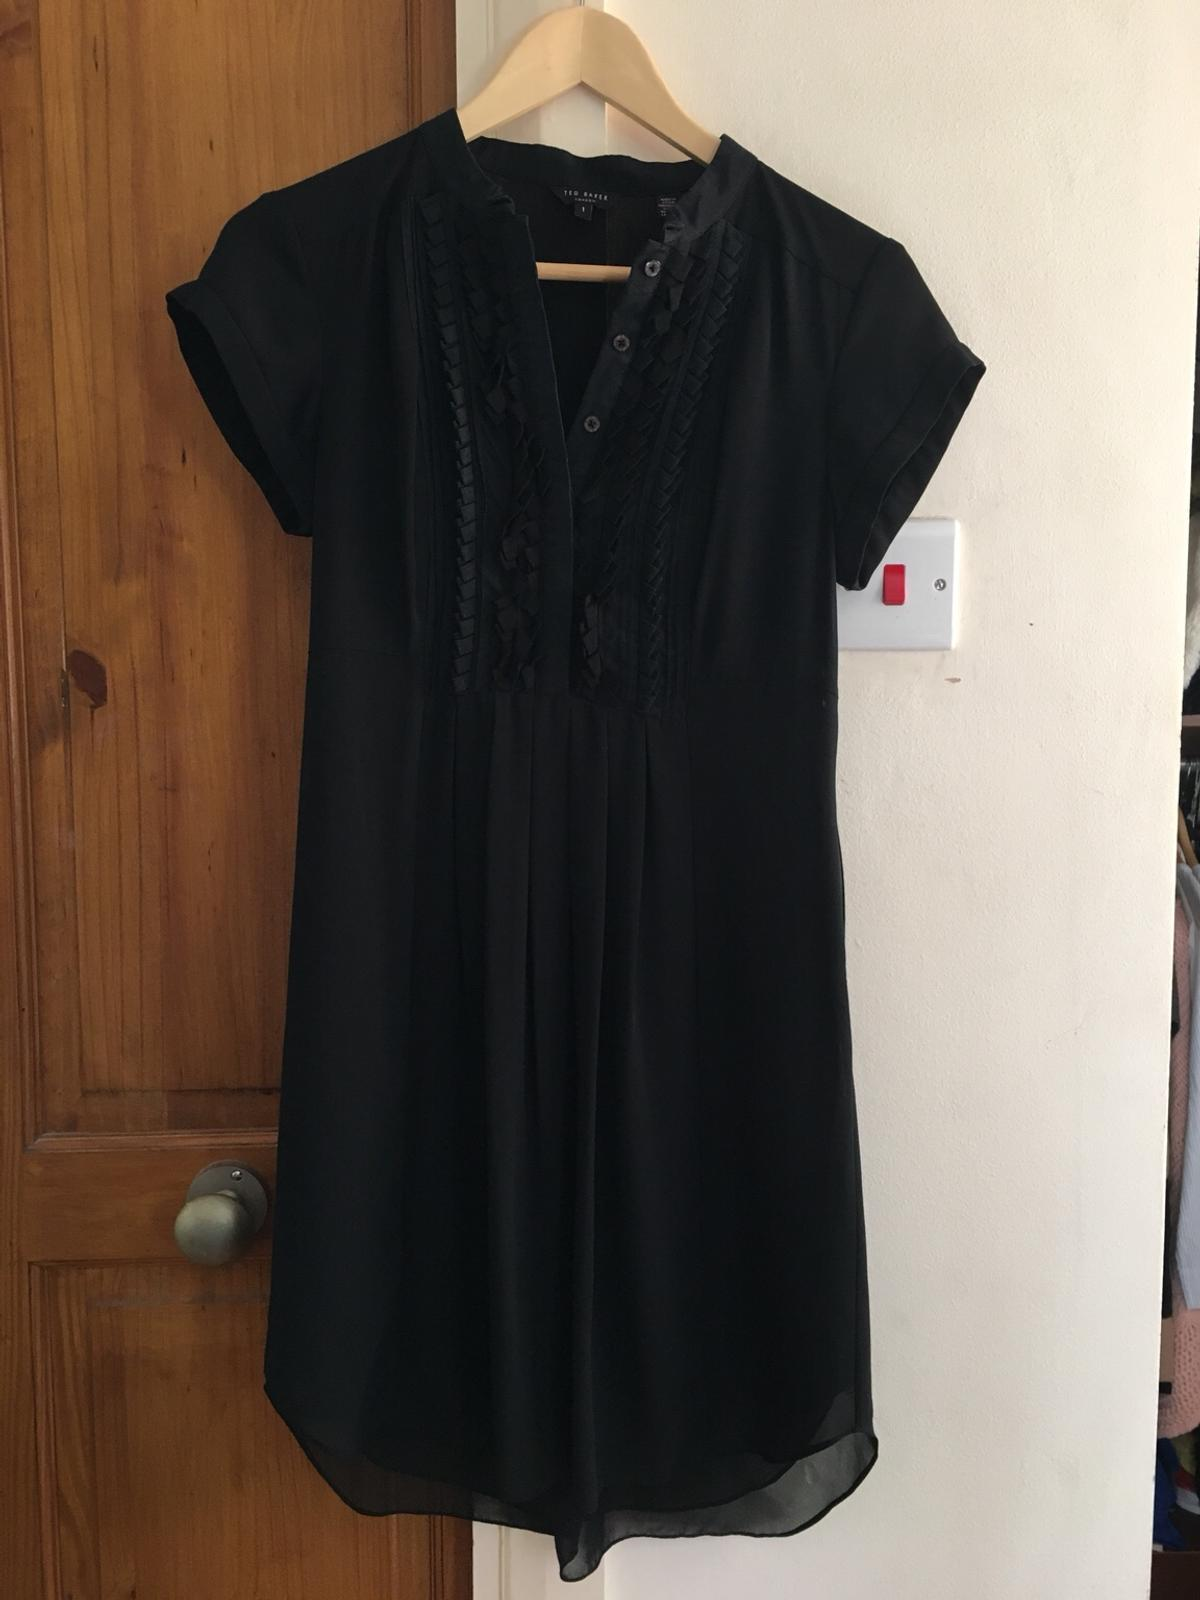 b6ccb42a6 Ted Baker black tunic dress size XS 8 in TW2 Thames for £10.00 for ...